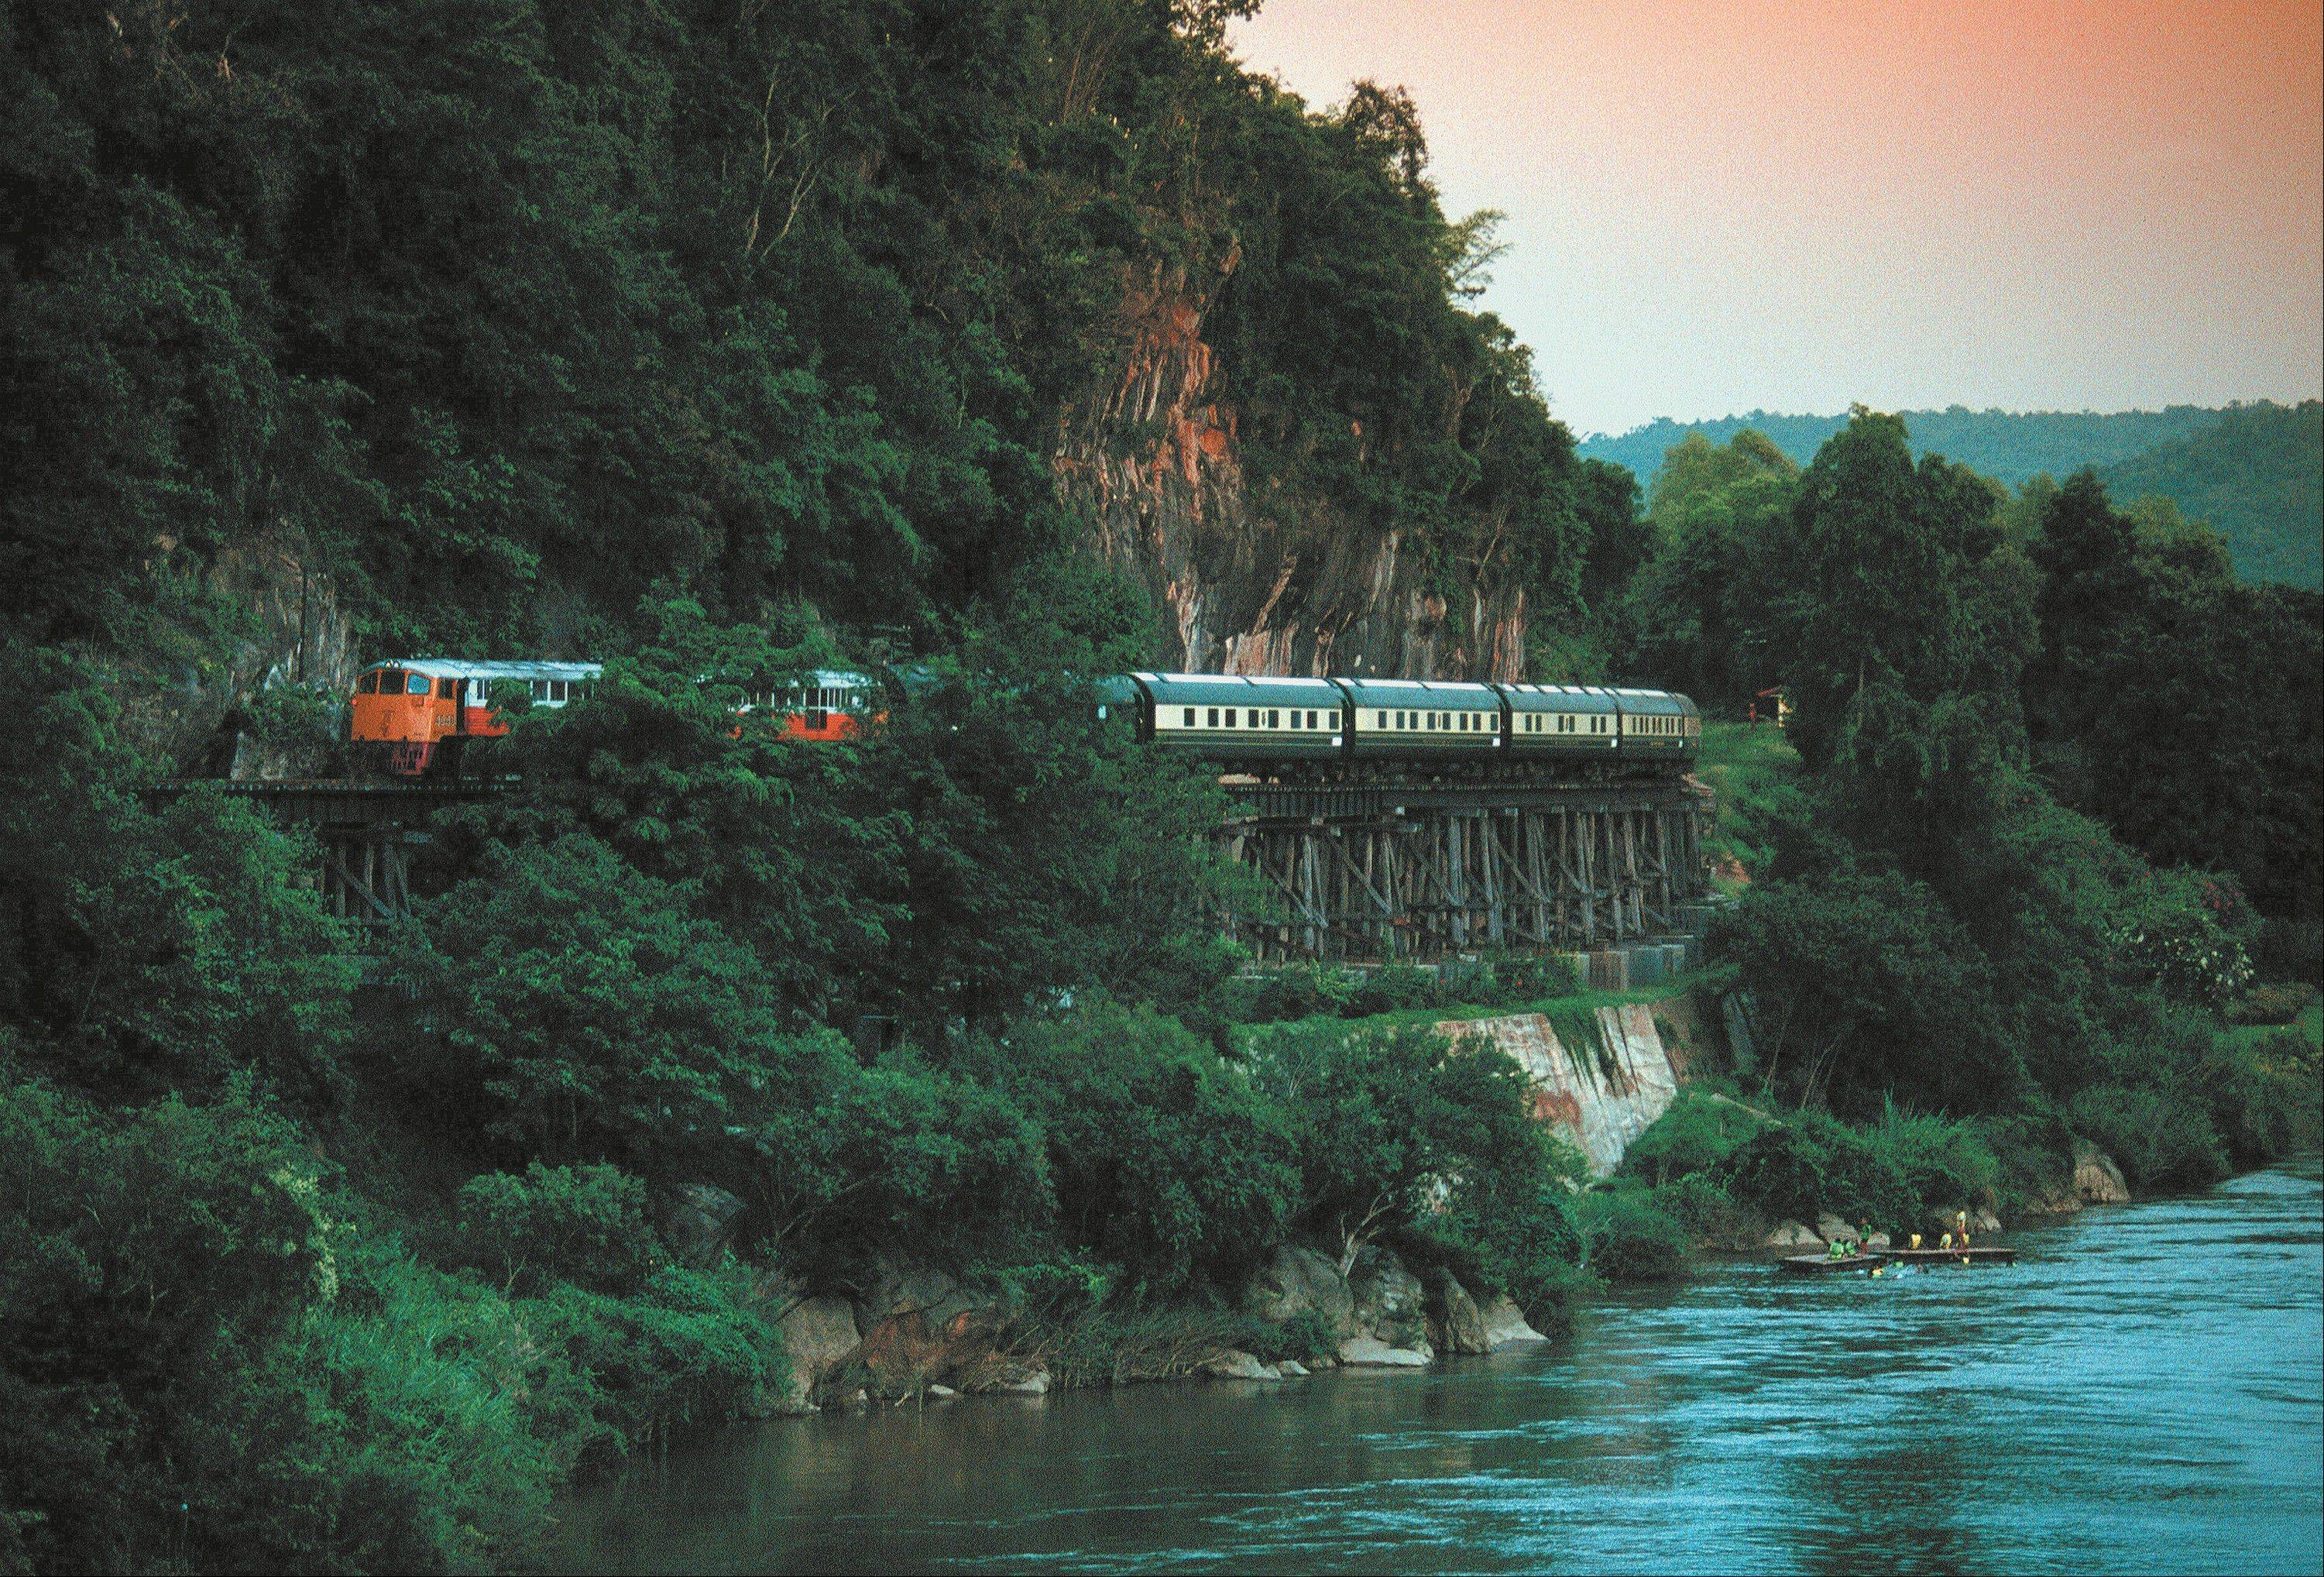 A train crosses the Kanchanaburi Bridge on the River Kwai in Thailand. The Eastern & Oriental is owned by the same company that took over the storied Orient Express, which began running between Paris and Vienna in 1883.